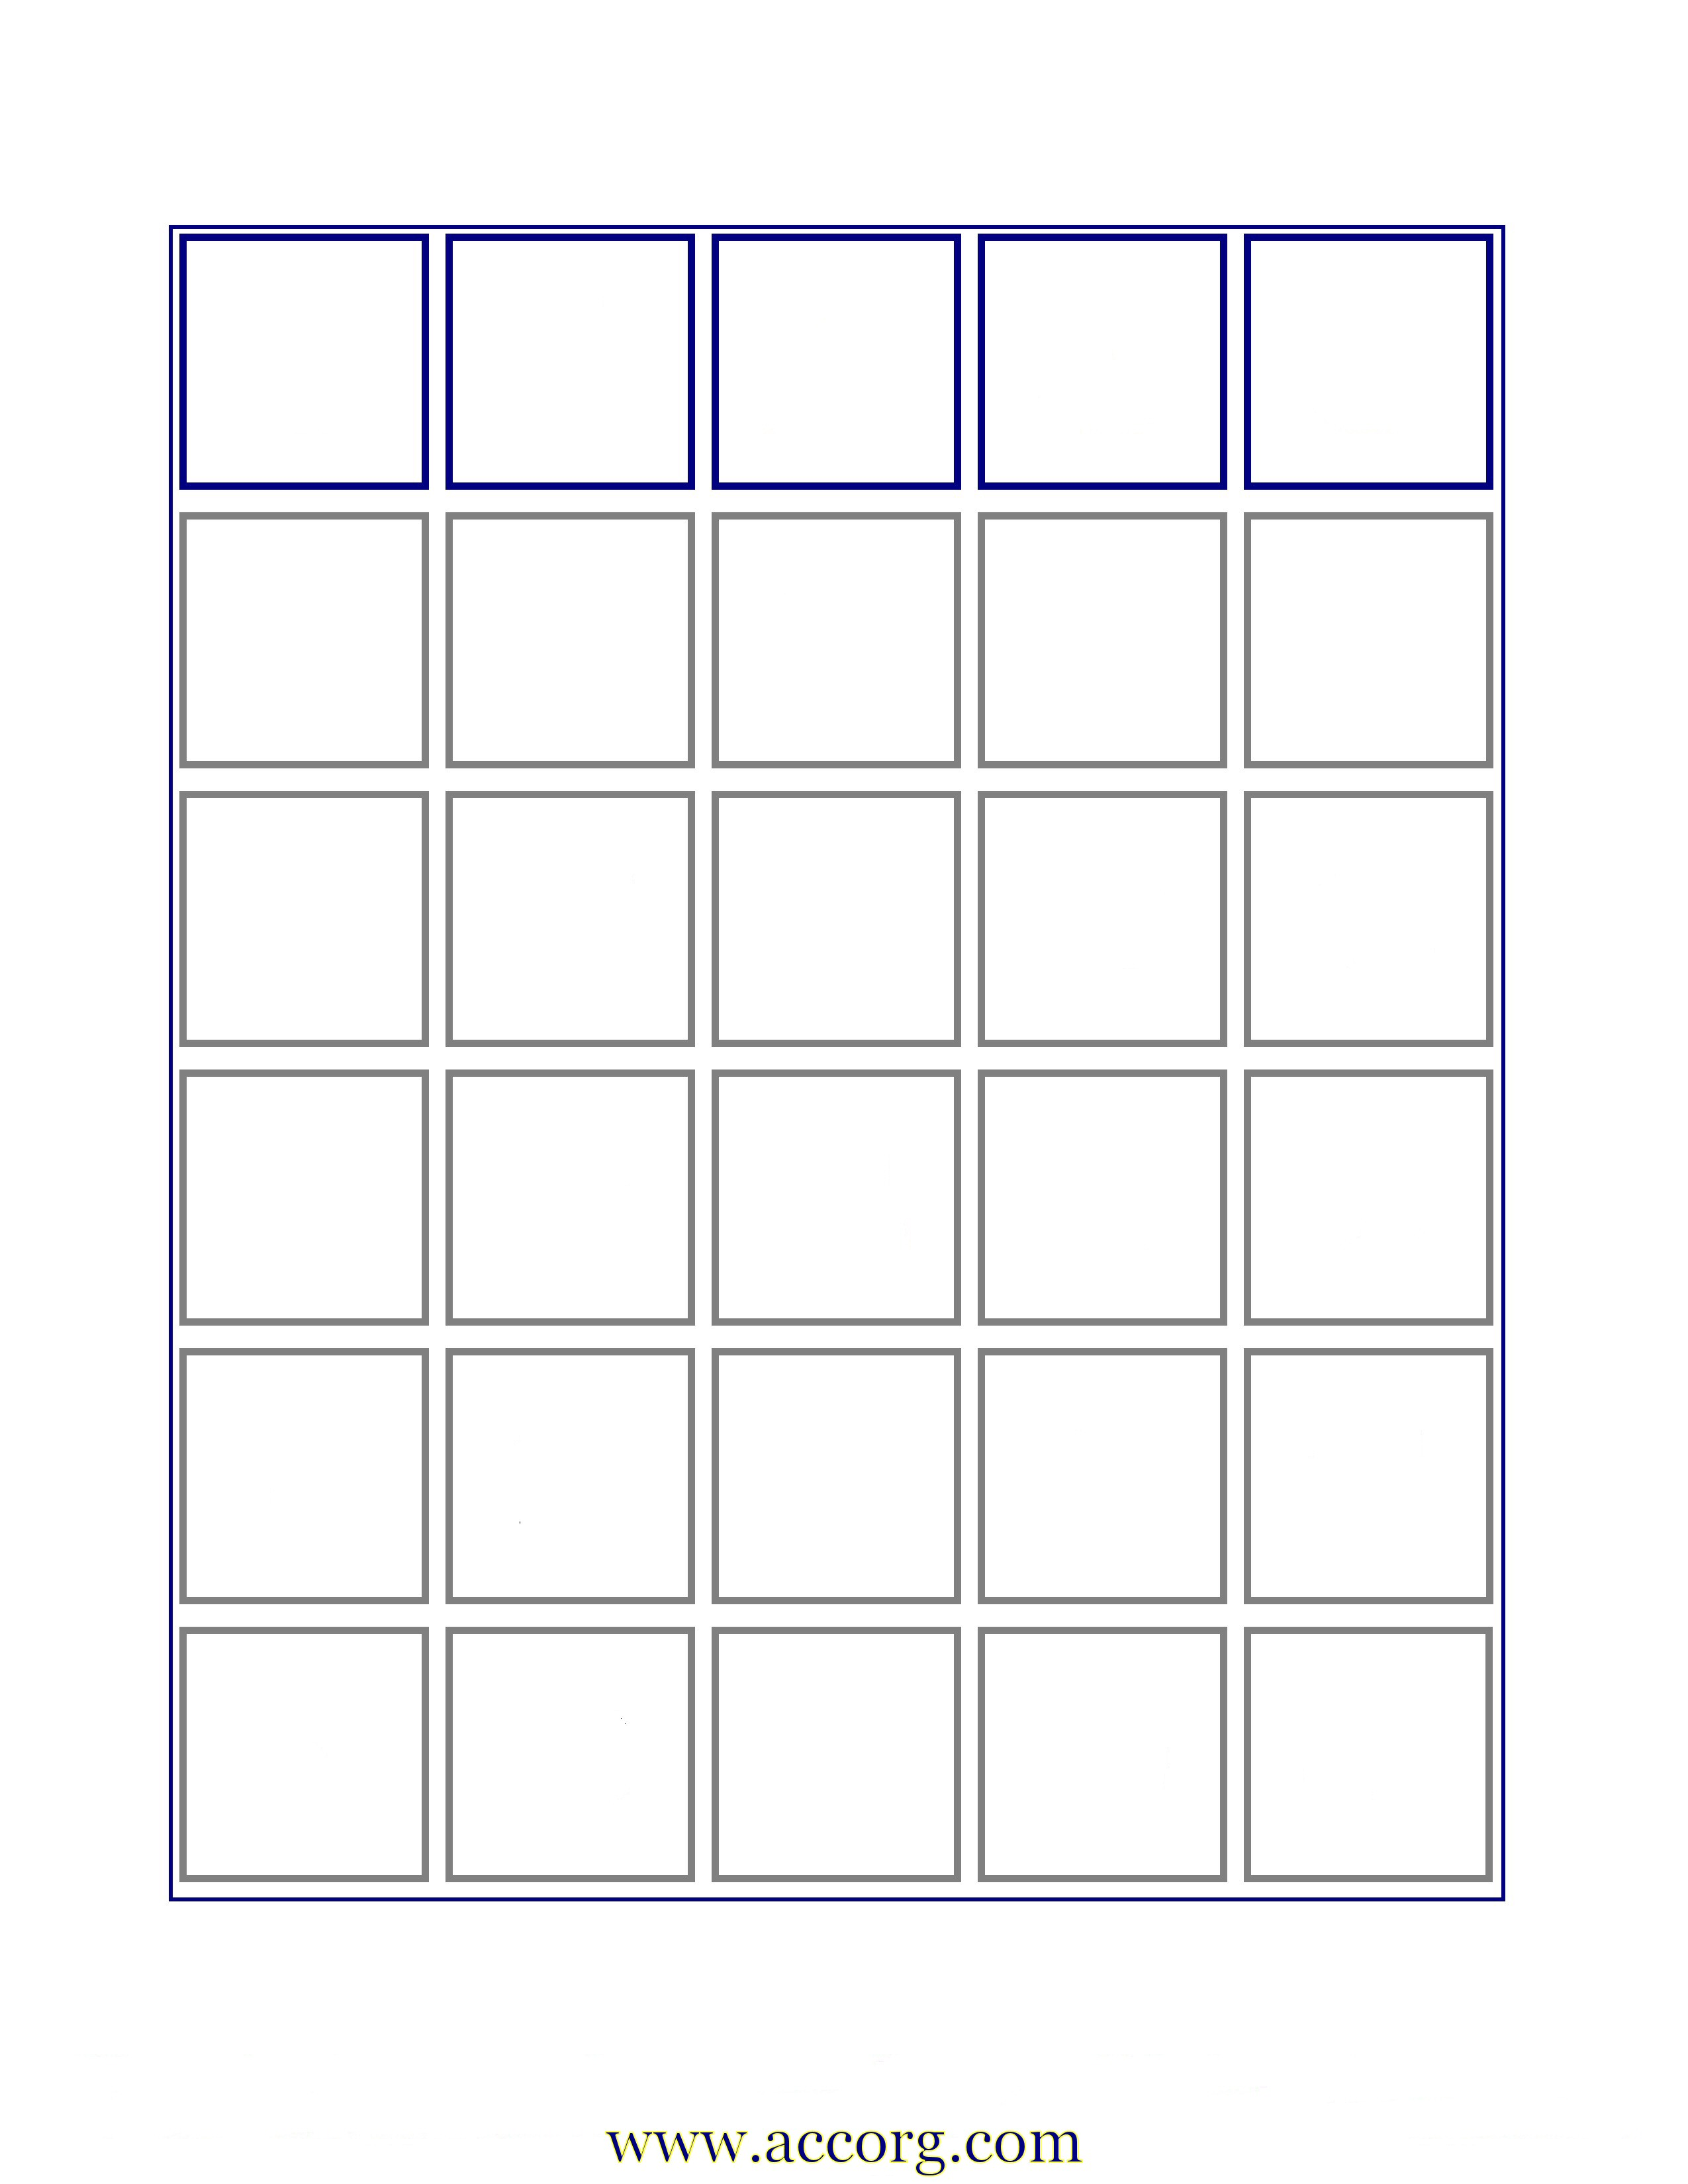 7 Best Images Of Free Printable Bingo Card Template